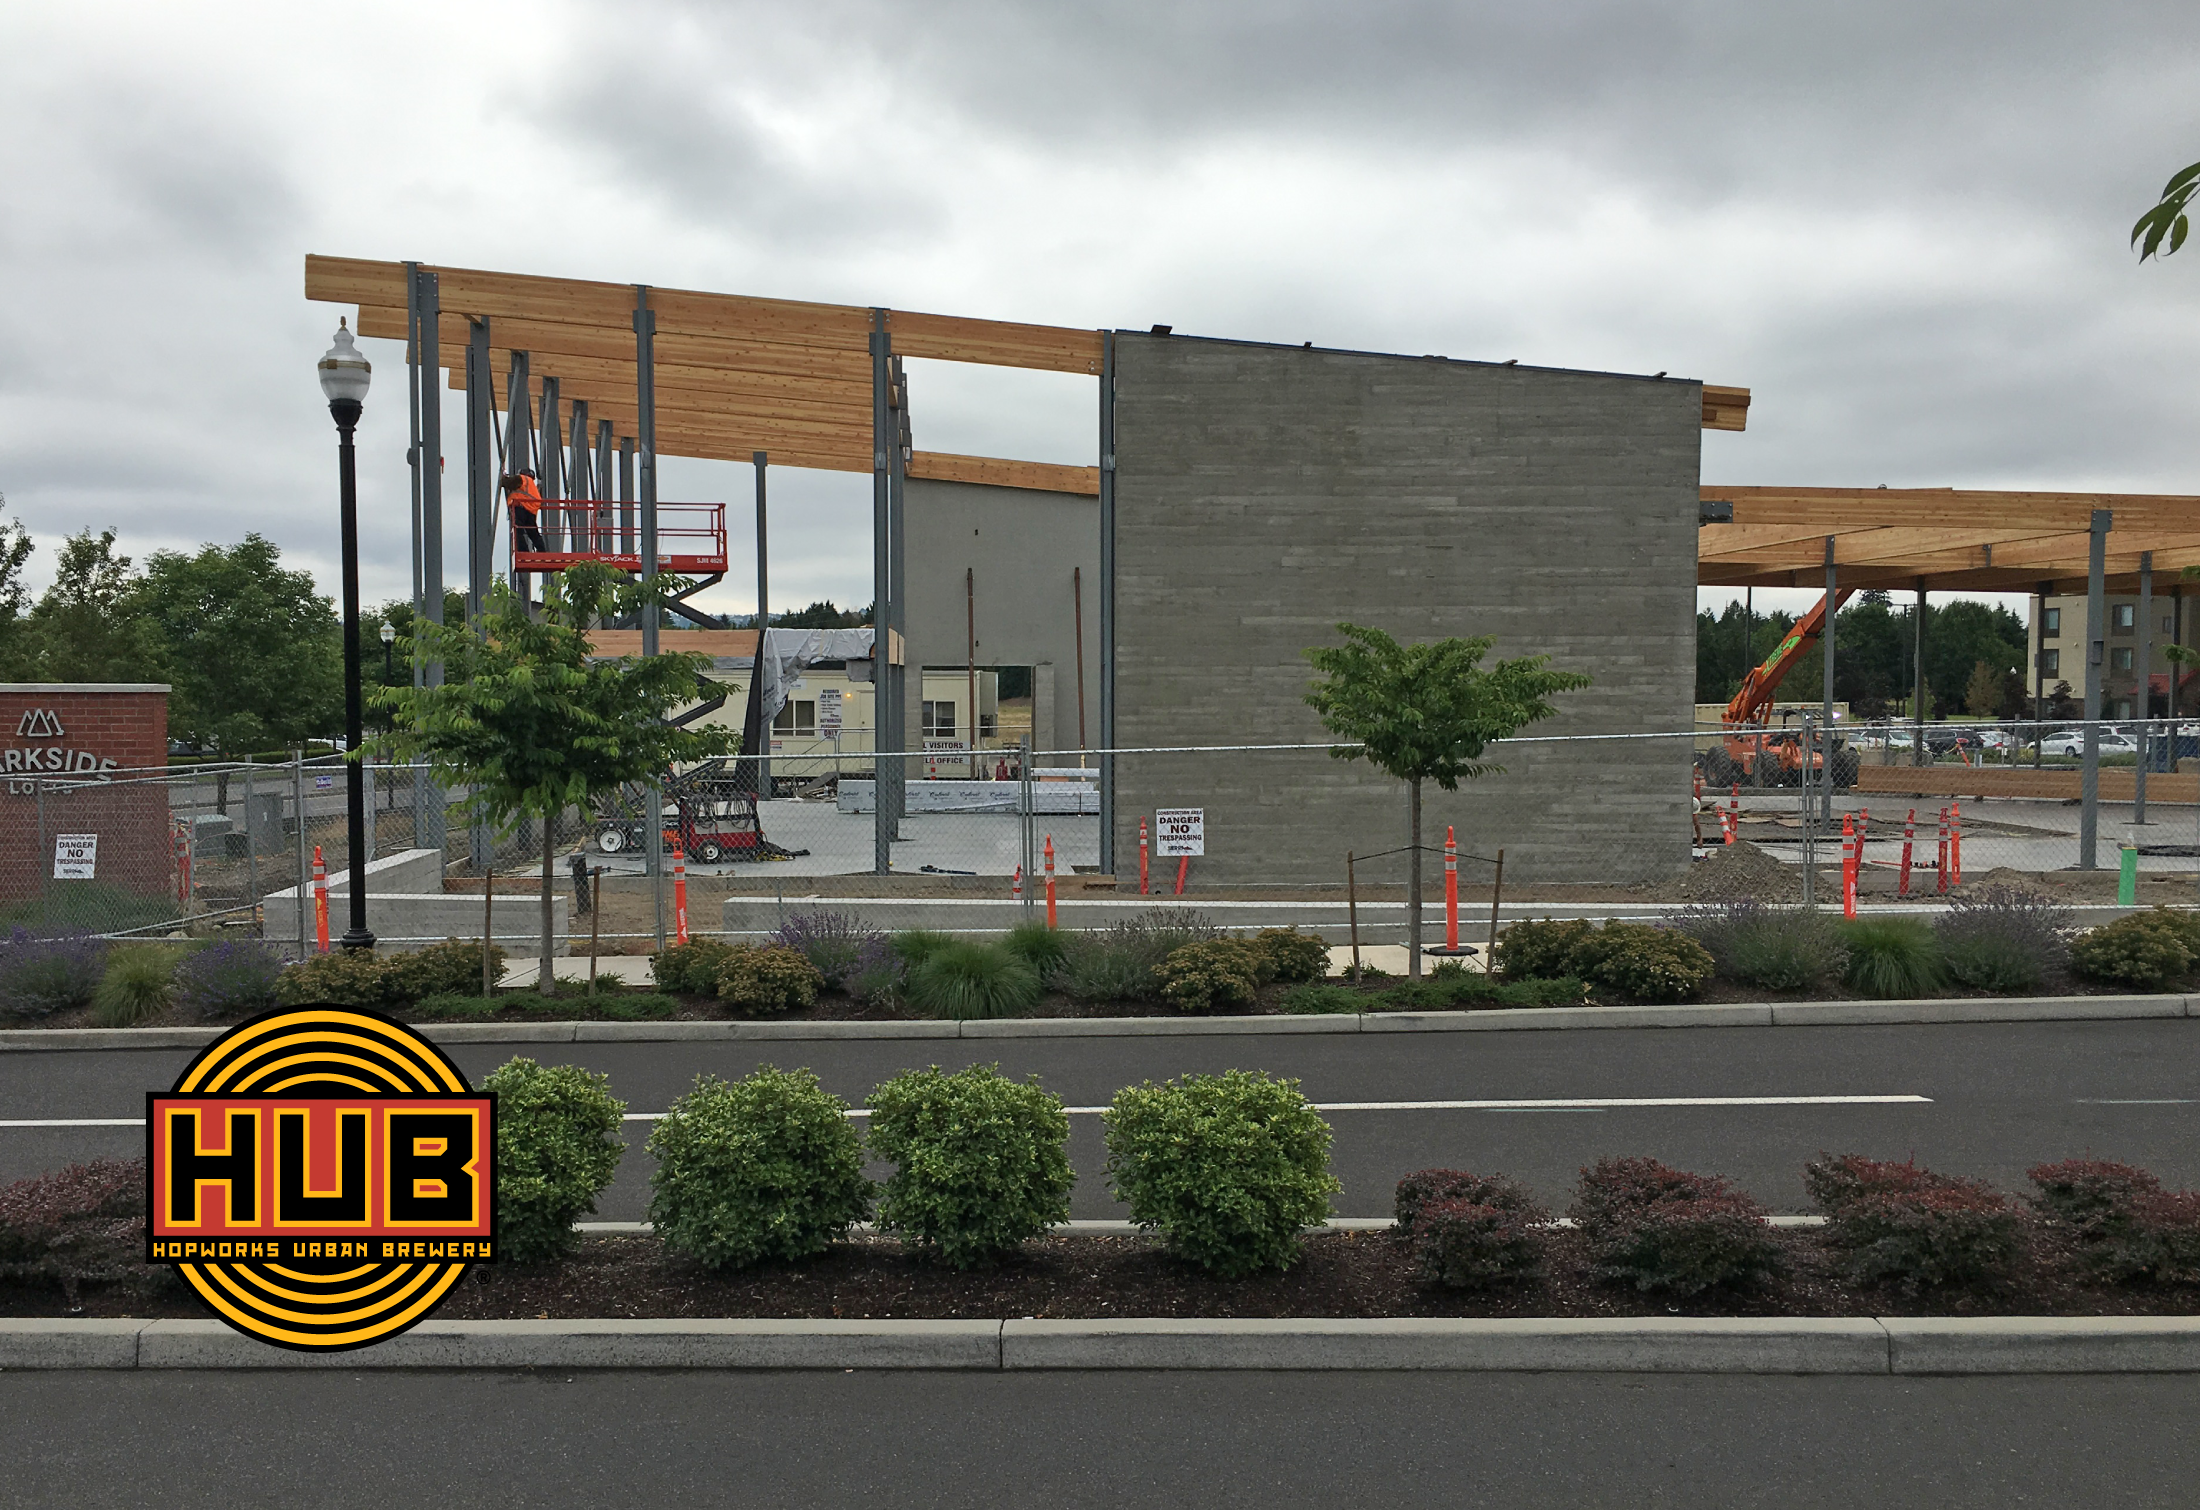 A view of the construction progress of the new Hopworks Urban Brewery location in Vancouver, Washington. (image courtesy of Siteworks)